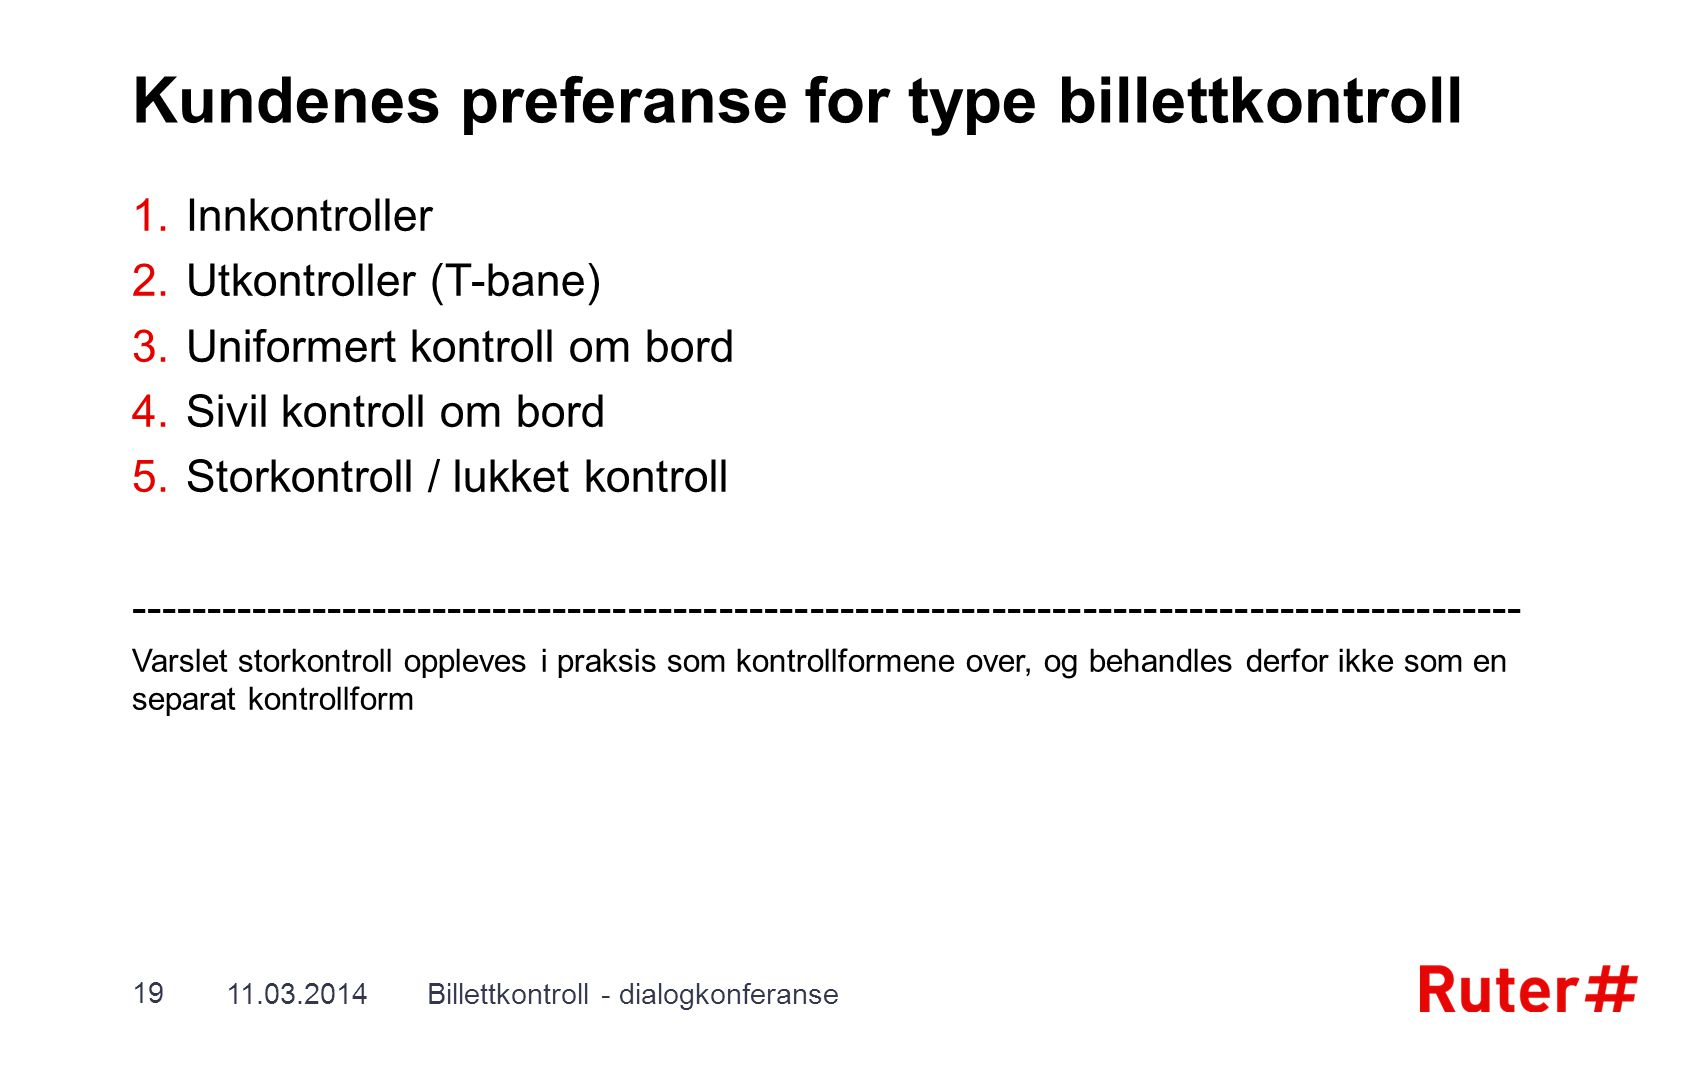 Kundenes preferanse for type billettkontroll